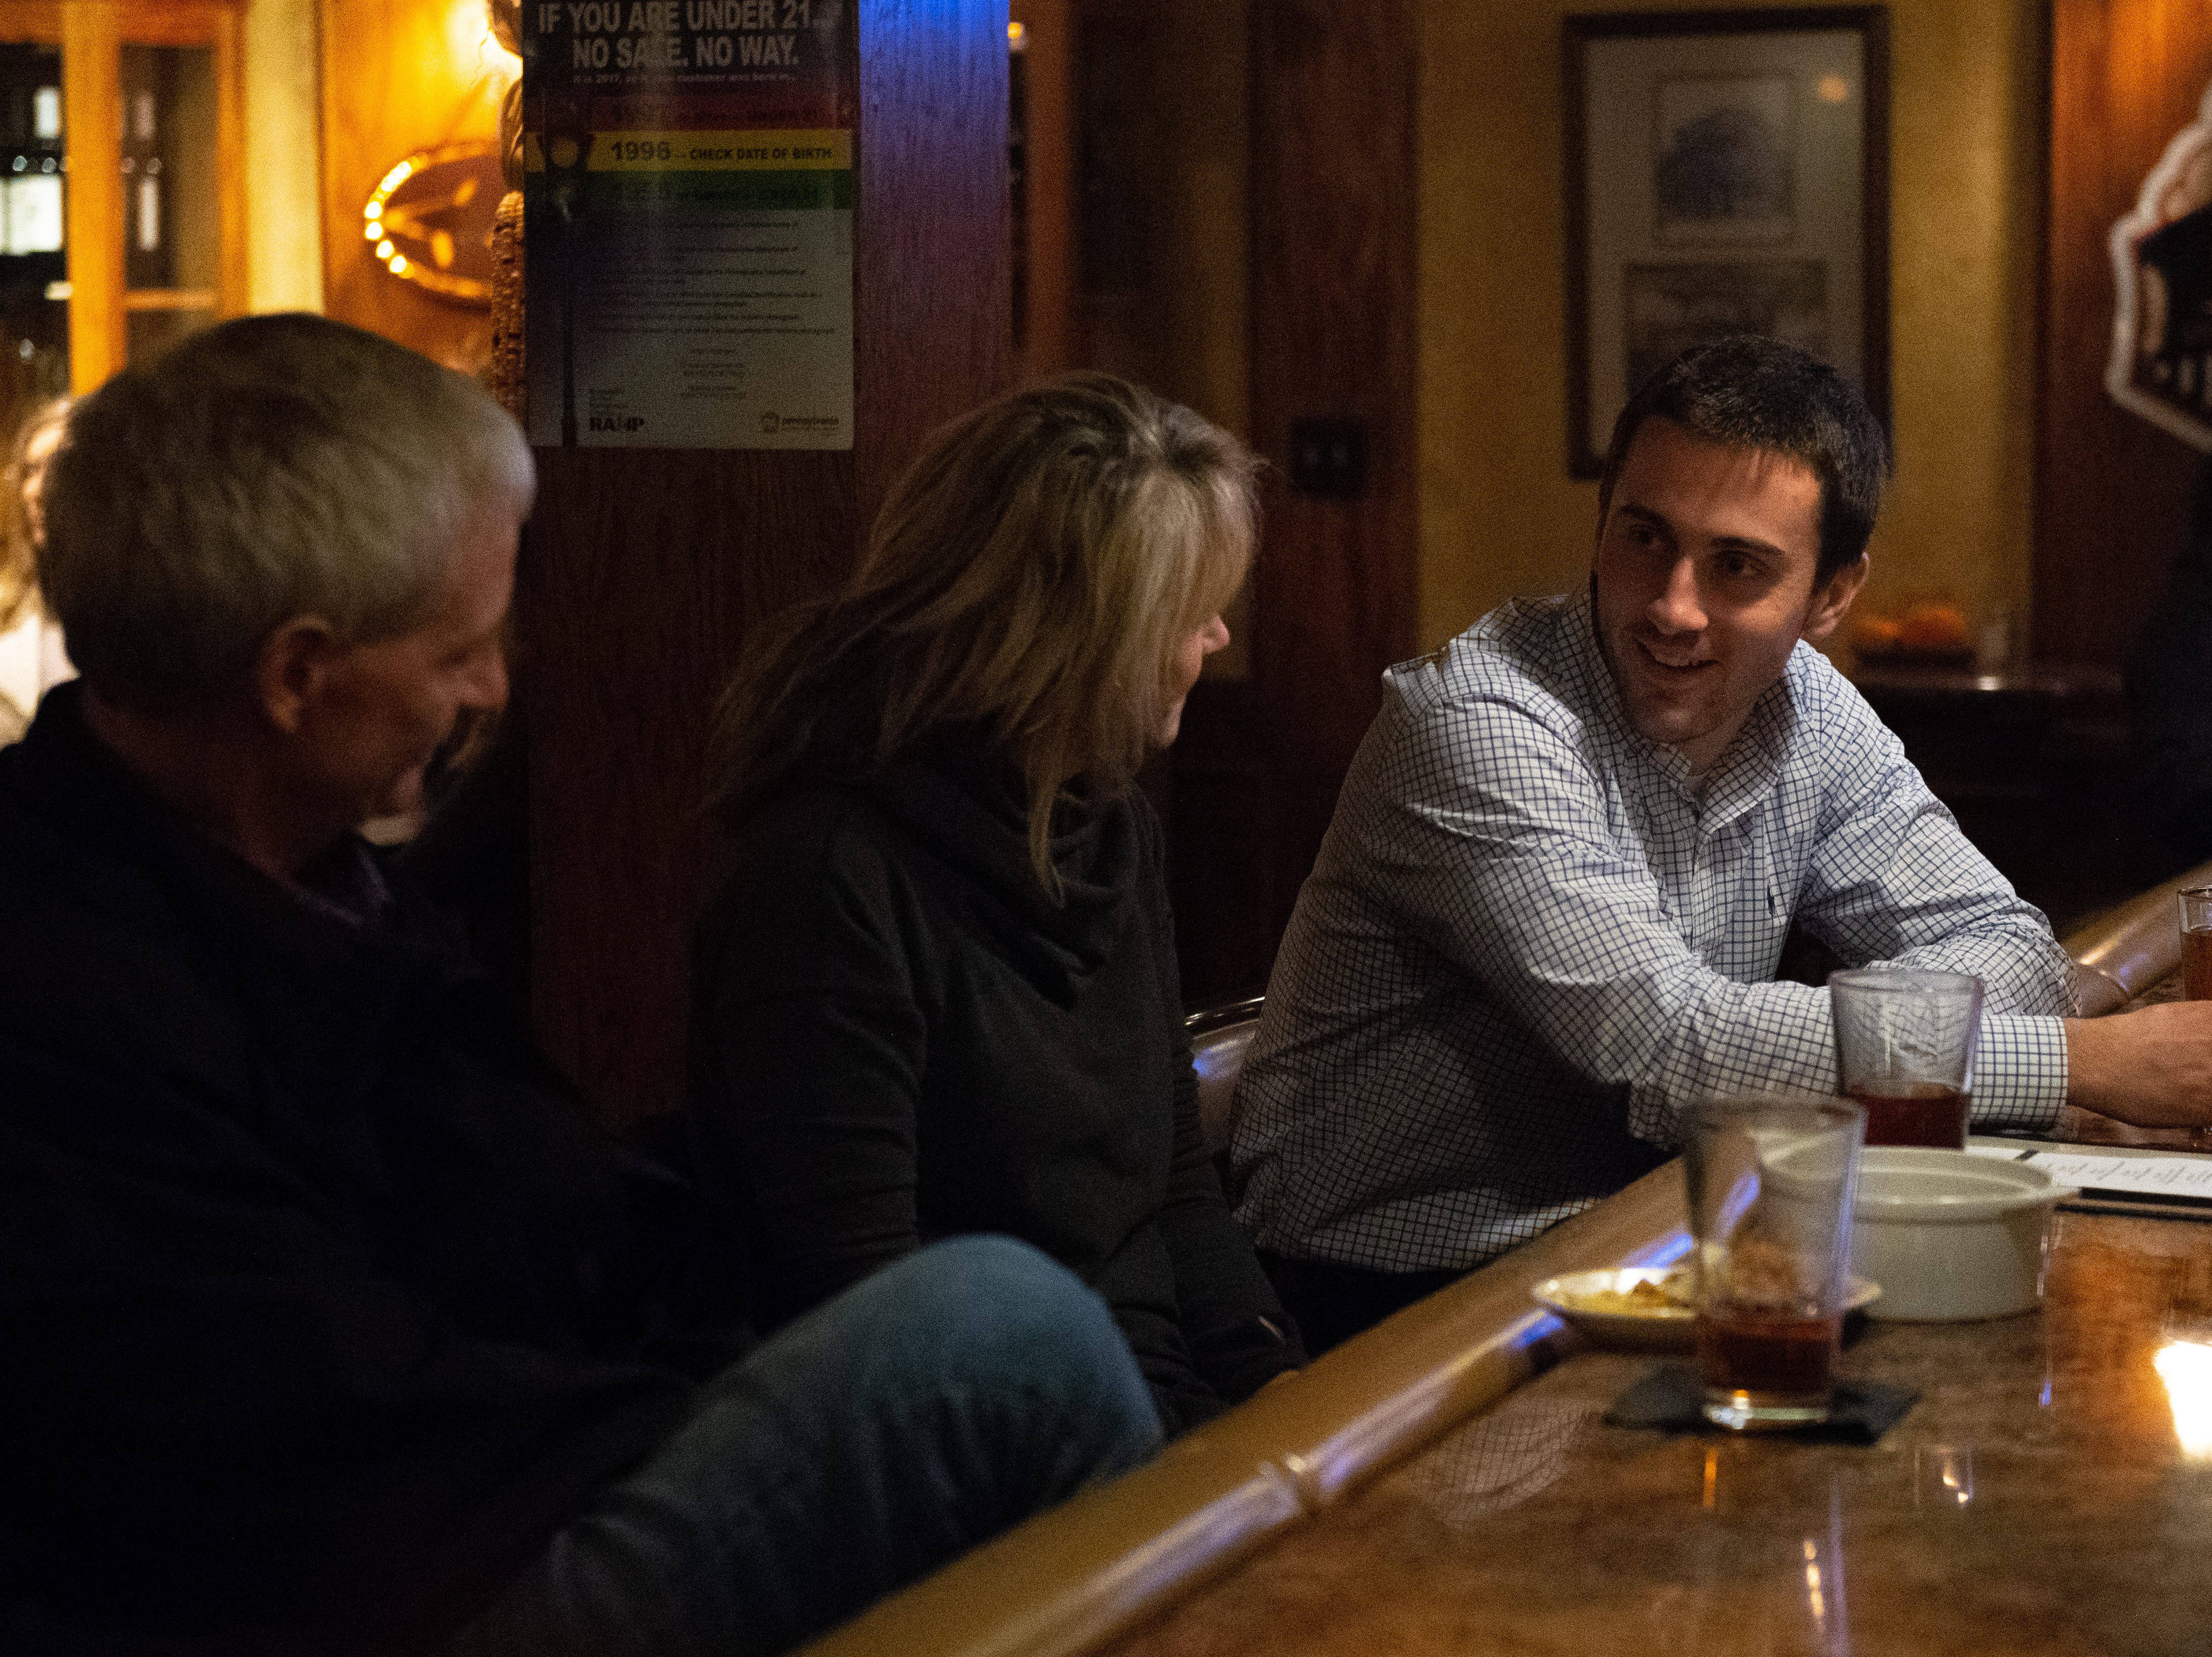 From left, customers Alan, Sandie and John King enjoy drinks and good conversation at the bar.